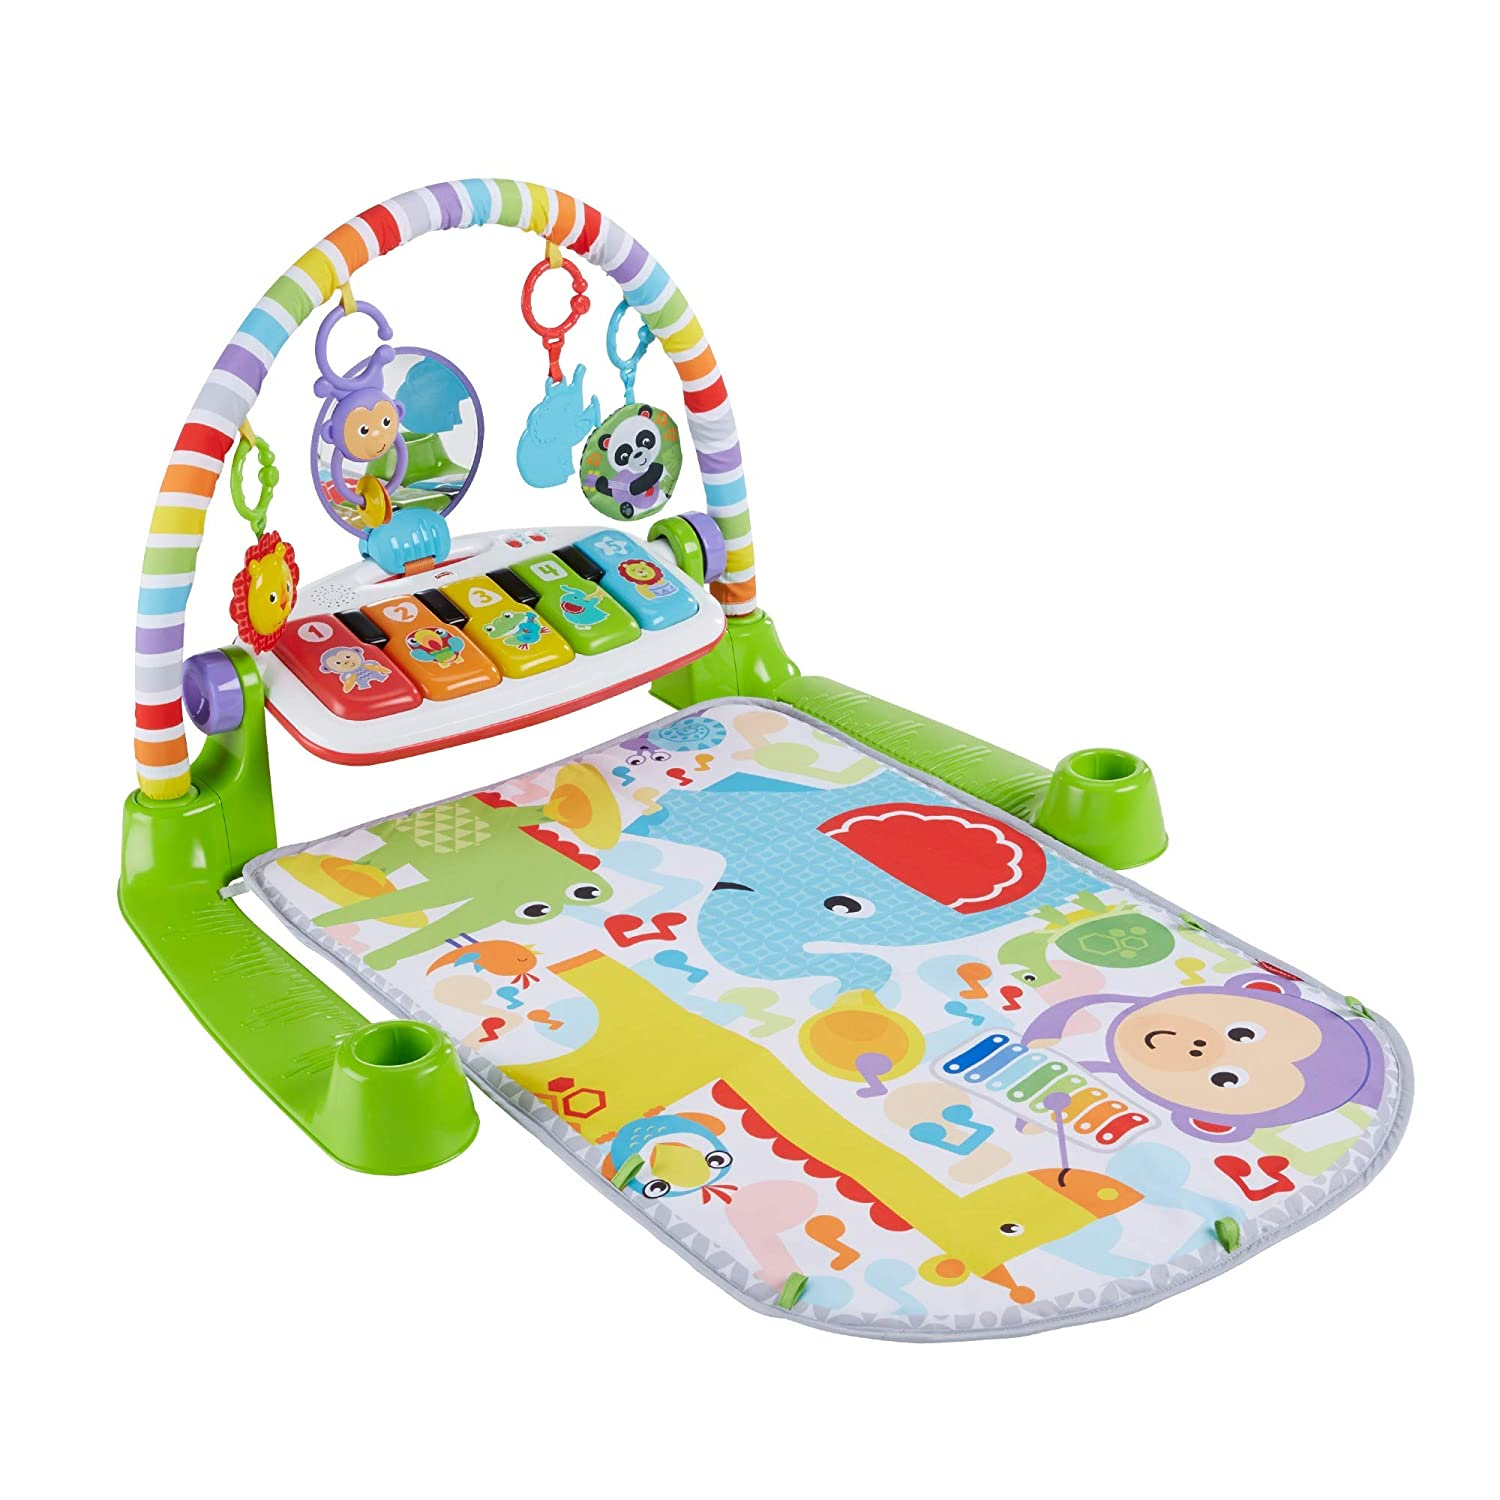 Fisher Price Deluxe Kick Play Piano Gym Best Baby Play Mat